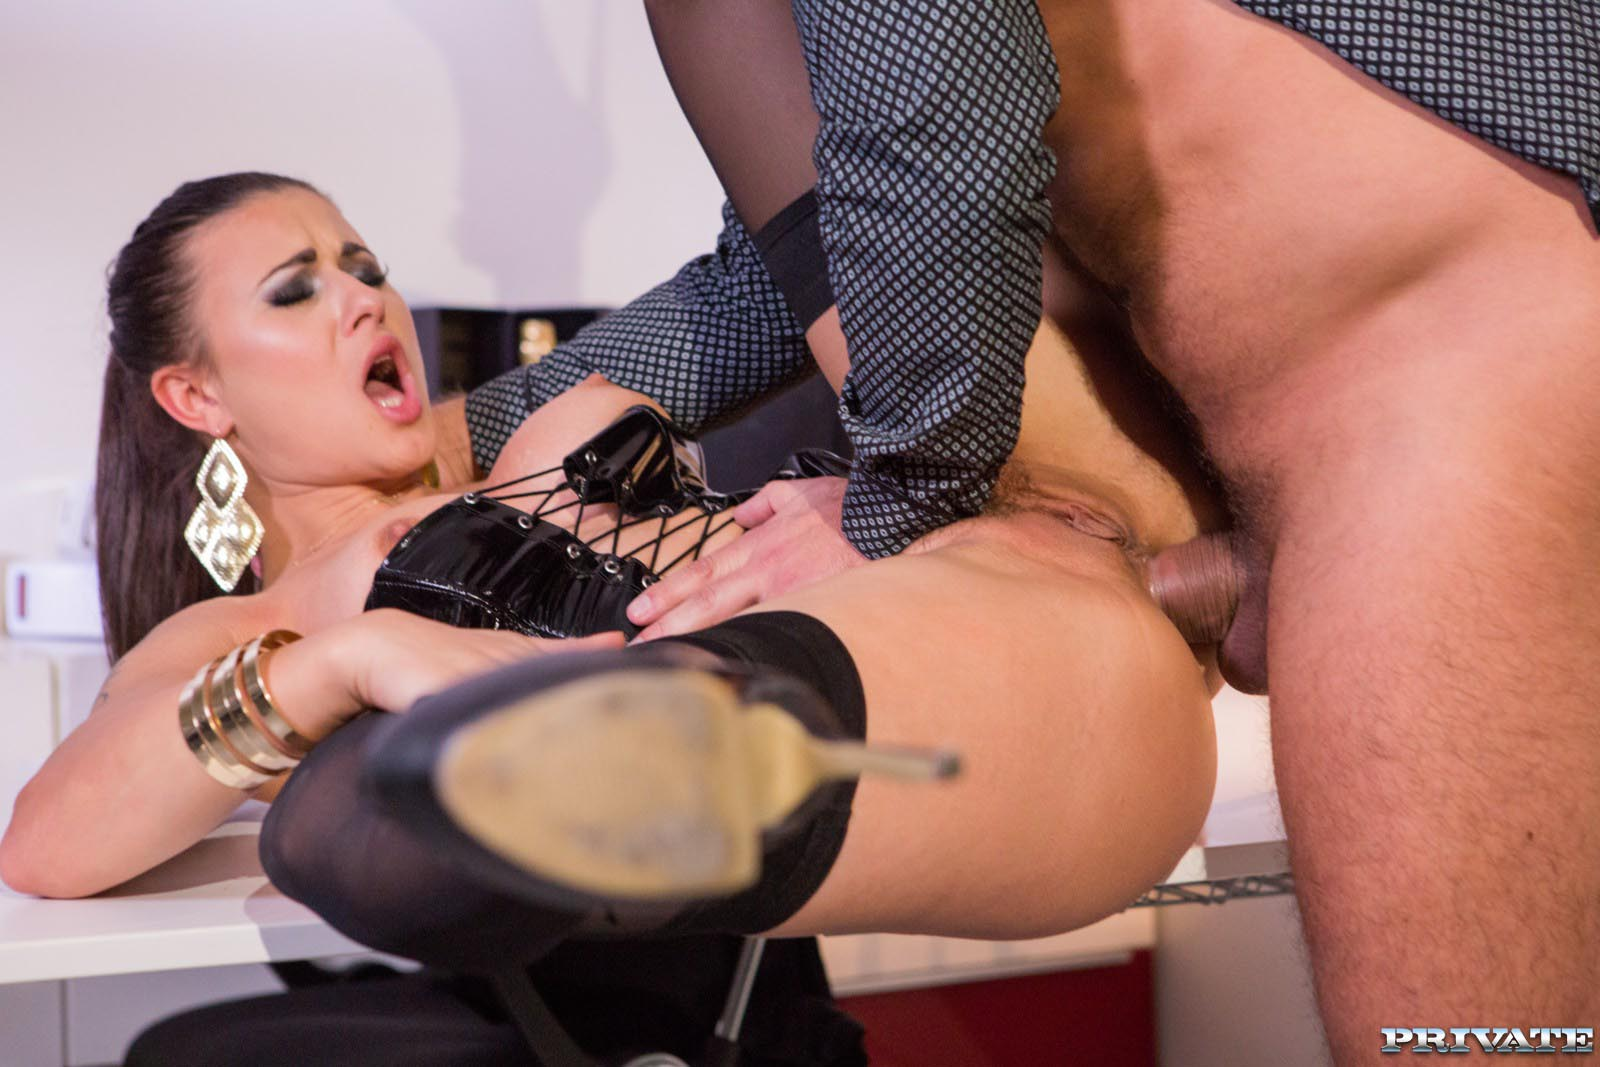 Billie Is Punished by the Boss with Hard Anal Sex 2 of 12